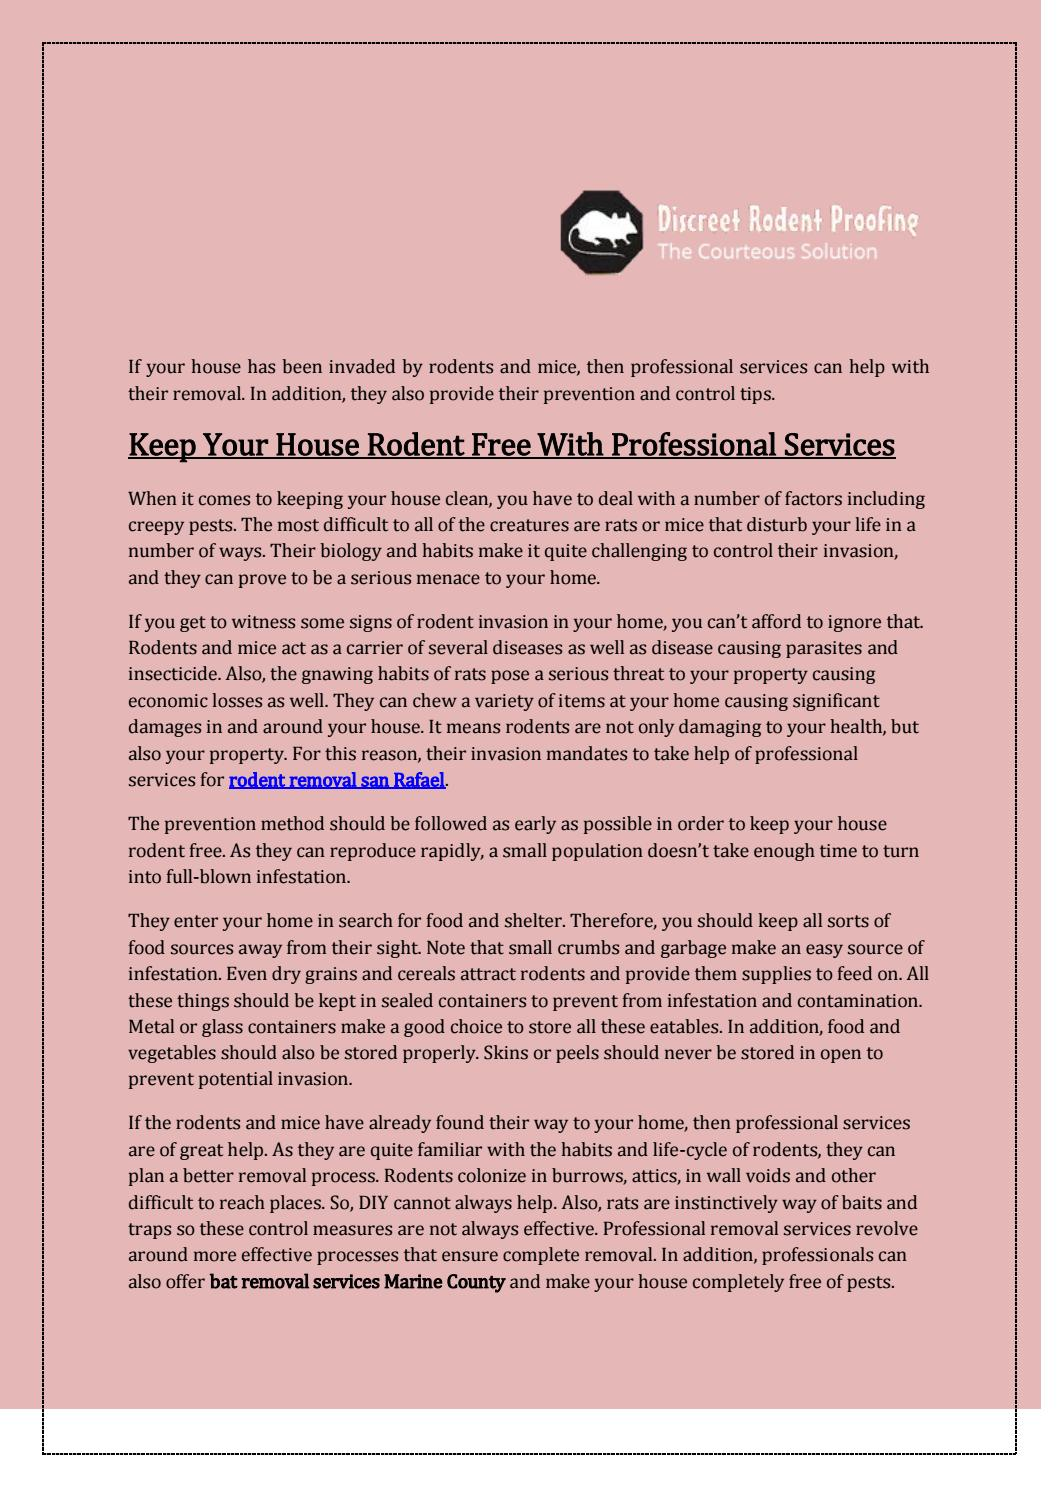 Keep your house rodent free with professional services by